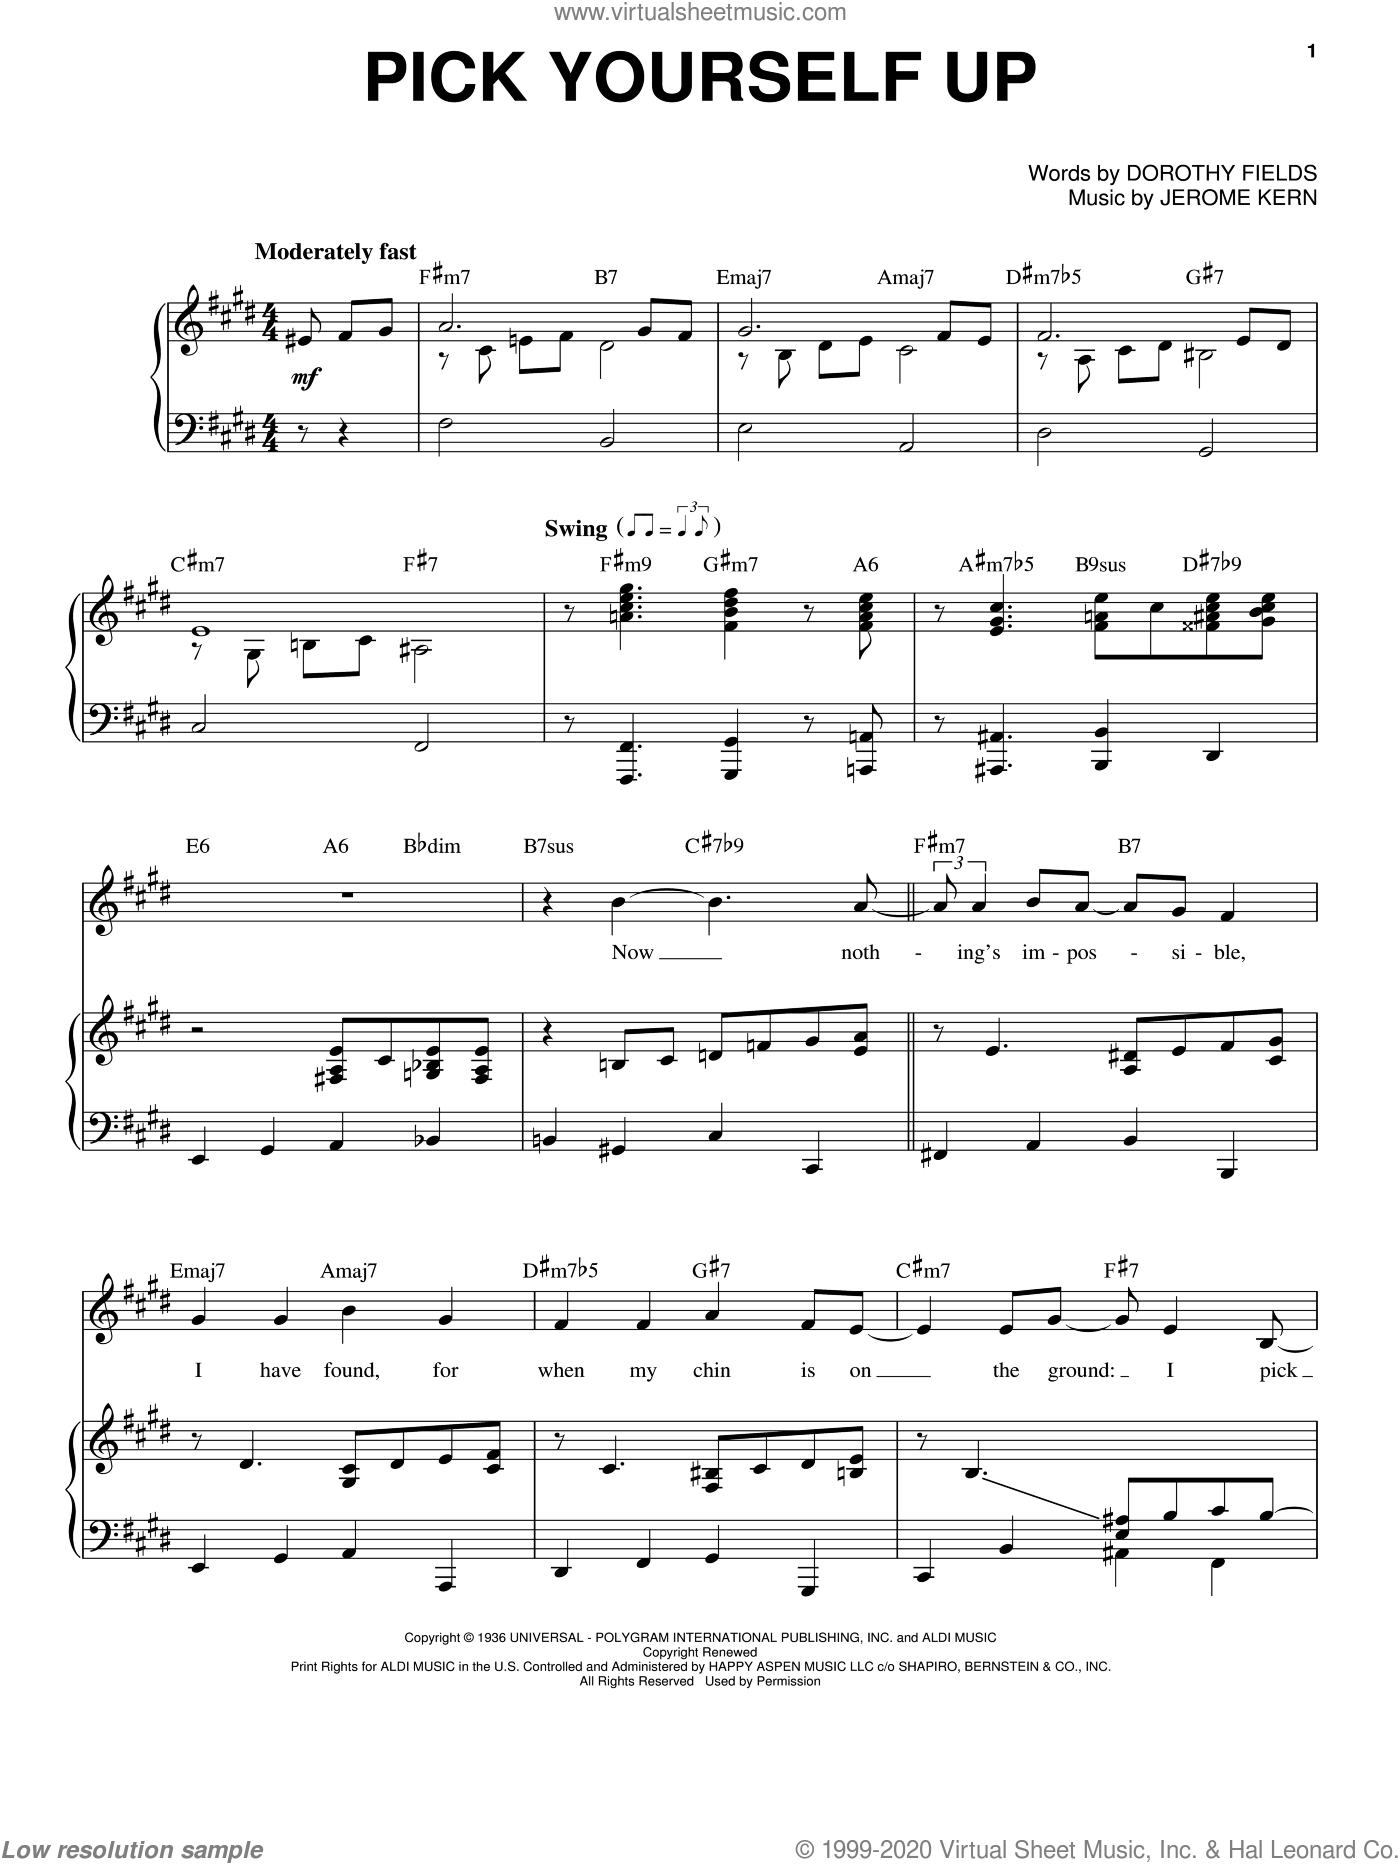 Pick Yourself Up sheet music for voice and piano by Frank Sinatra, Come Fly Away (Musical), Dorothy Fields and Jerome Kern, intermediate skill level